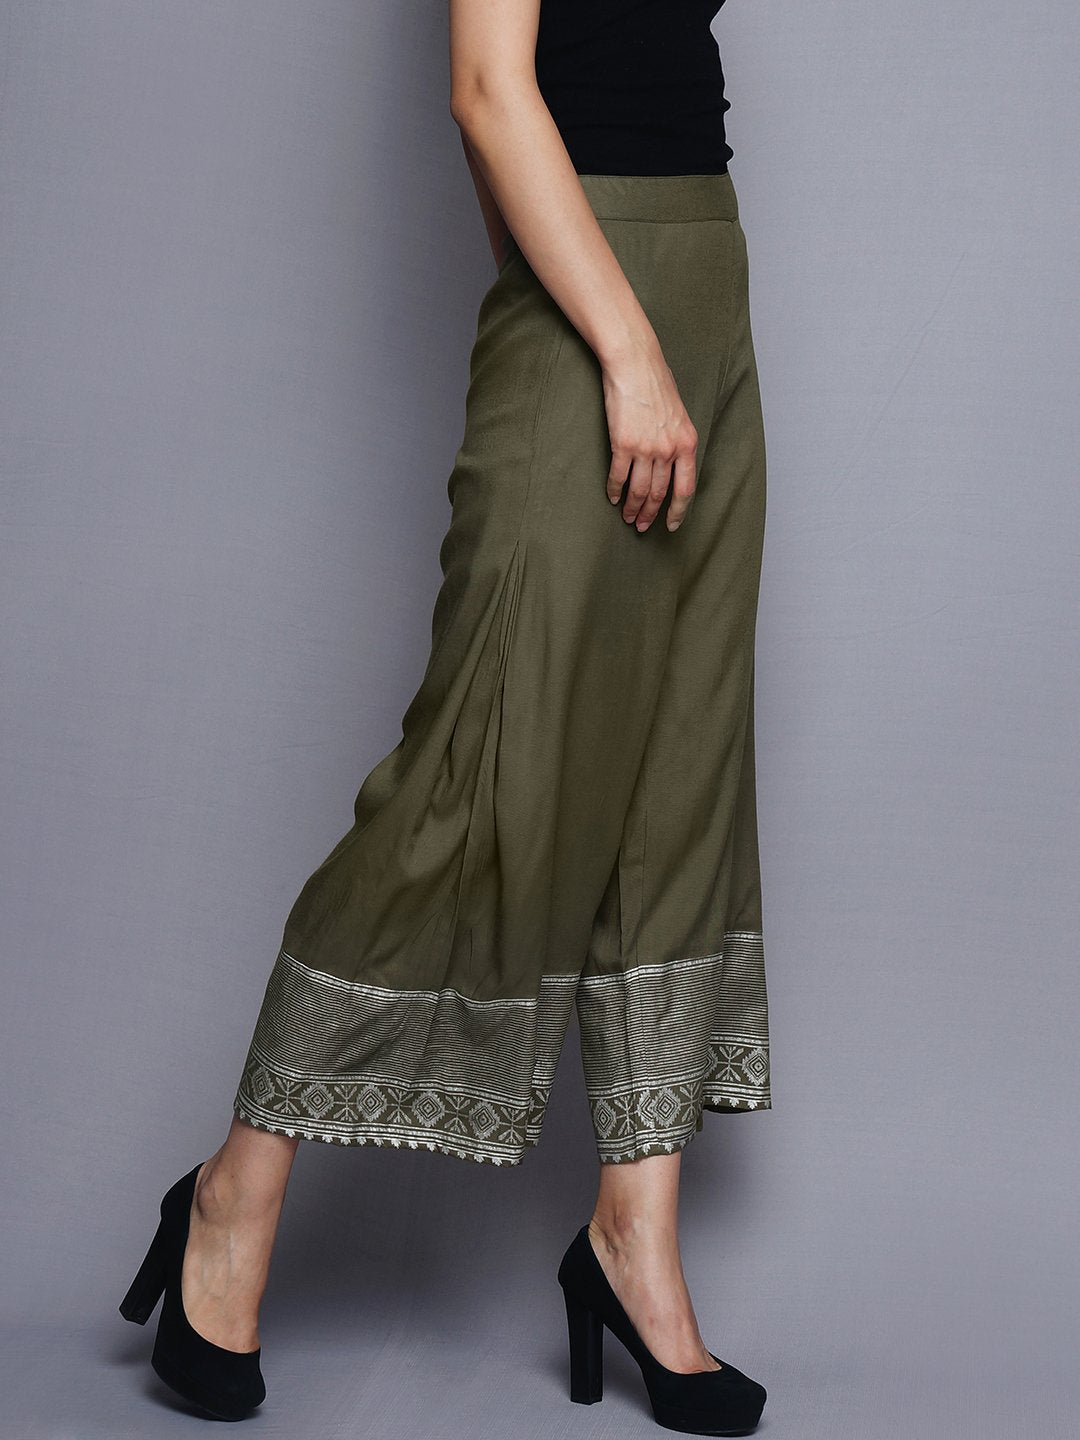 Olive Green Pallazo With Printed Border | Untung